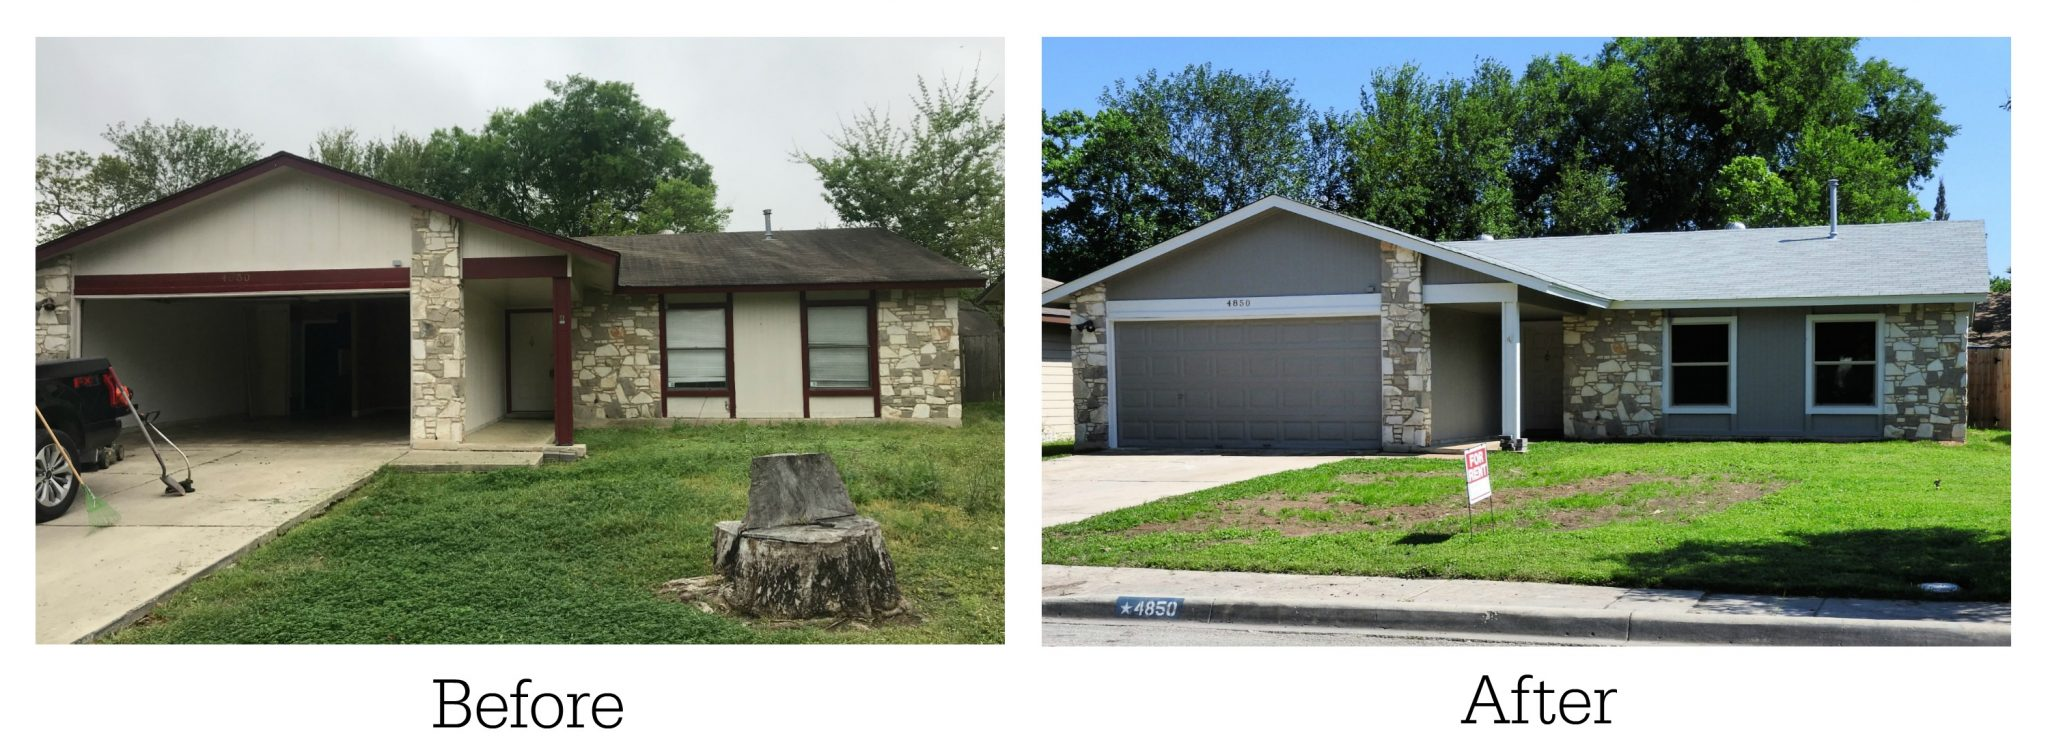 before and after outside of house for my first real estate investing